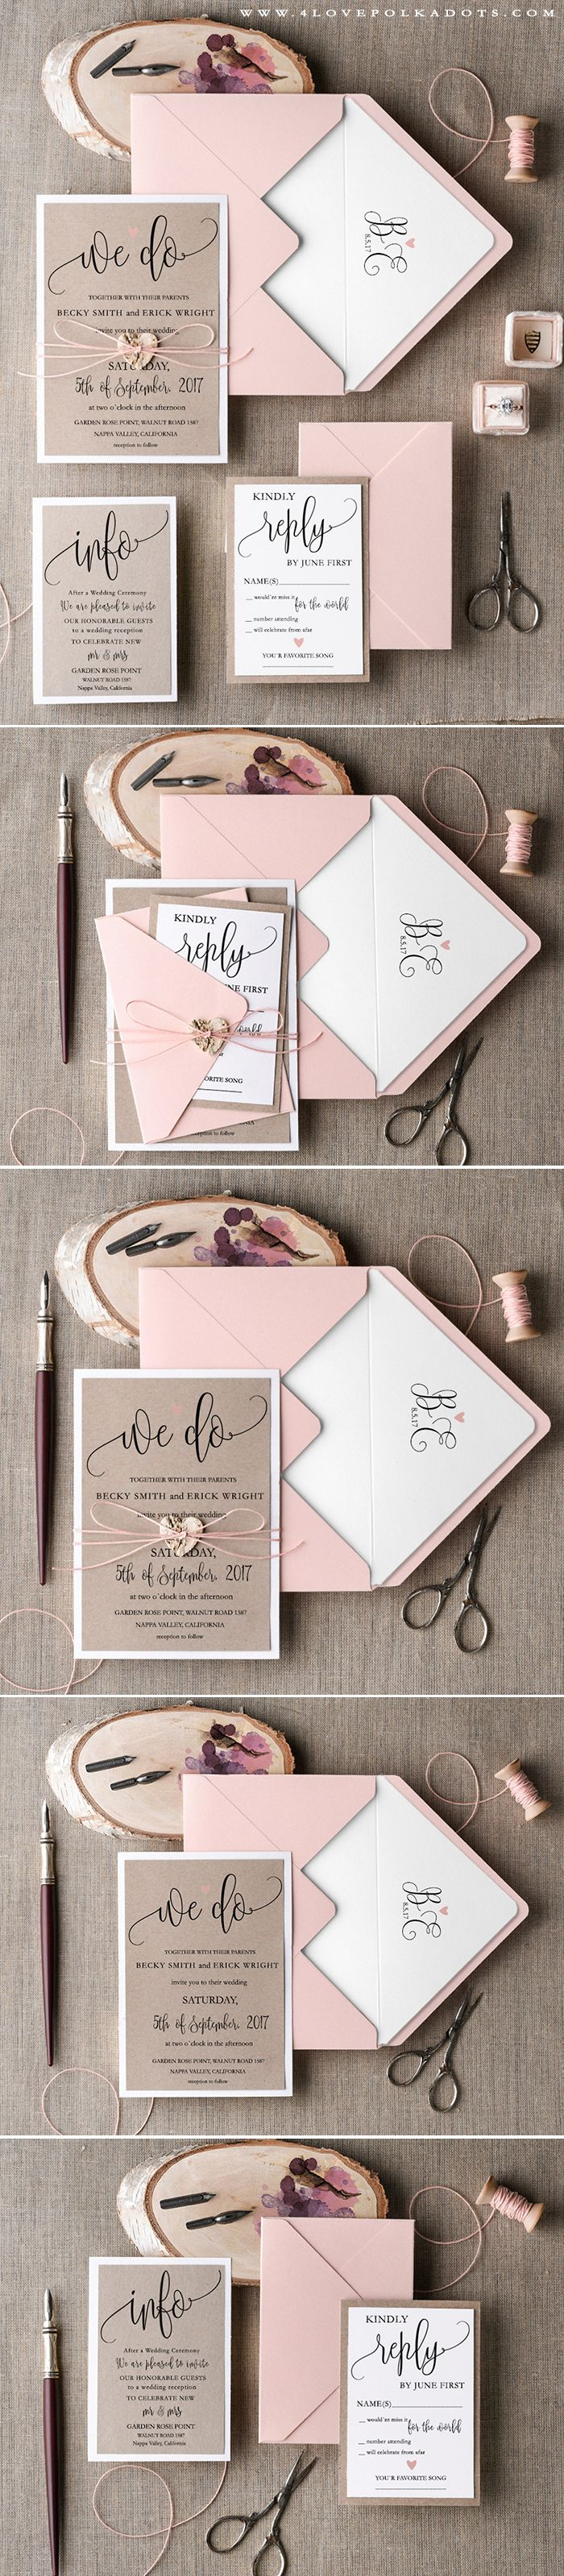 wedding card invite wordings%0A Pink  u     Eco Handmade Wedding Invitation  summerwedding  weddinginvitations   Rsvp Wedding Cards WordingWedding